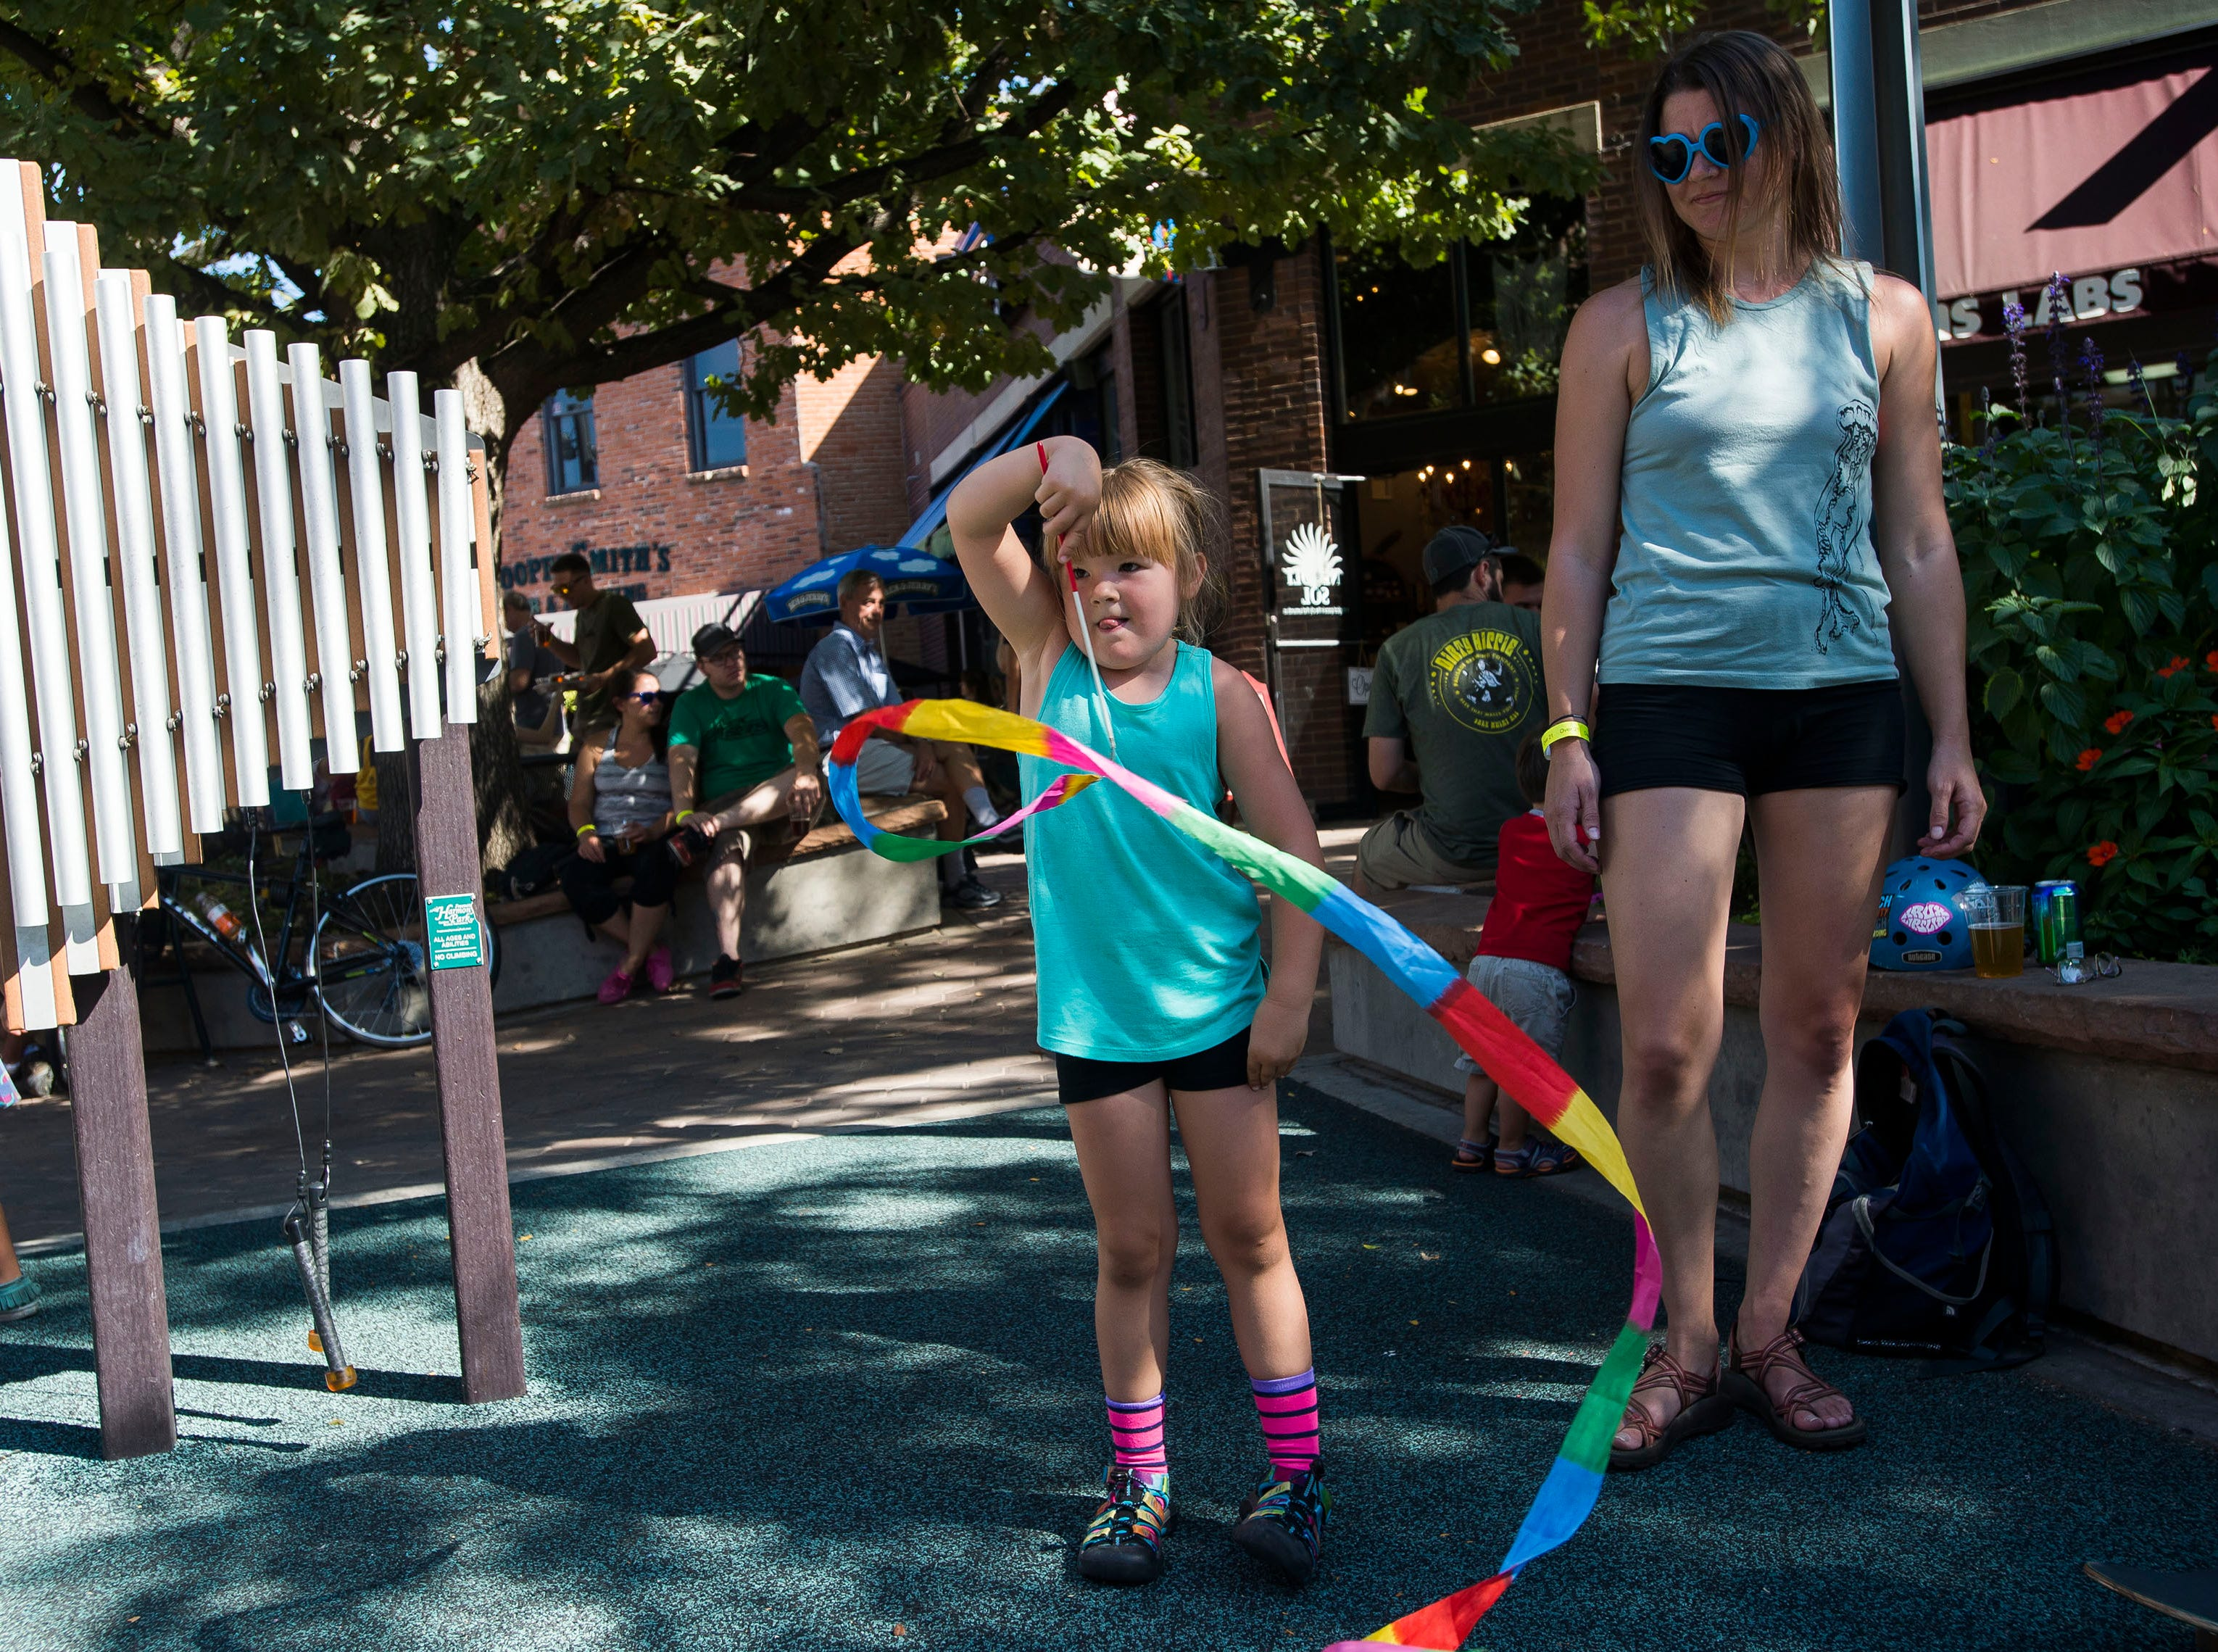 Maya McGowan twirls her ribbon while her mother Liz Brandon looks on during Fortoberfest 2018 on Saturday, Sept. 15, 2018, at Old Town Square in Fort Collins, Colo.